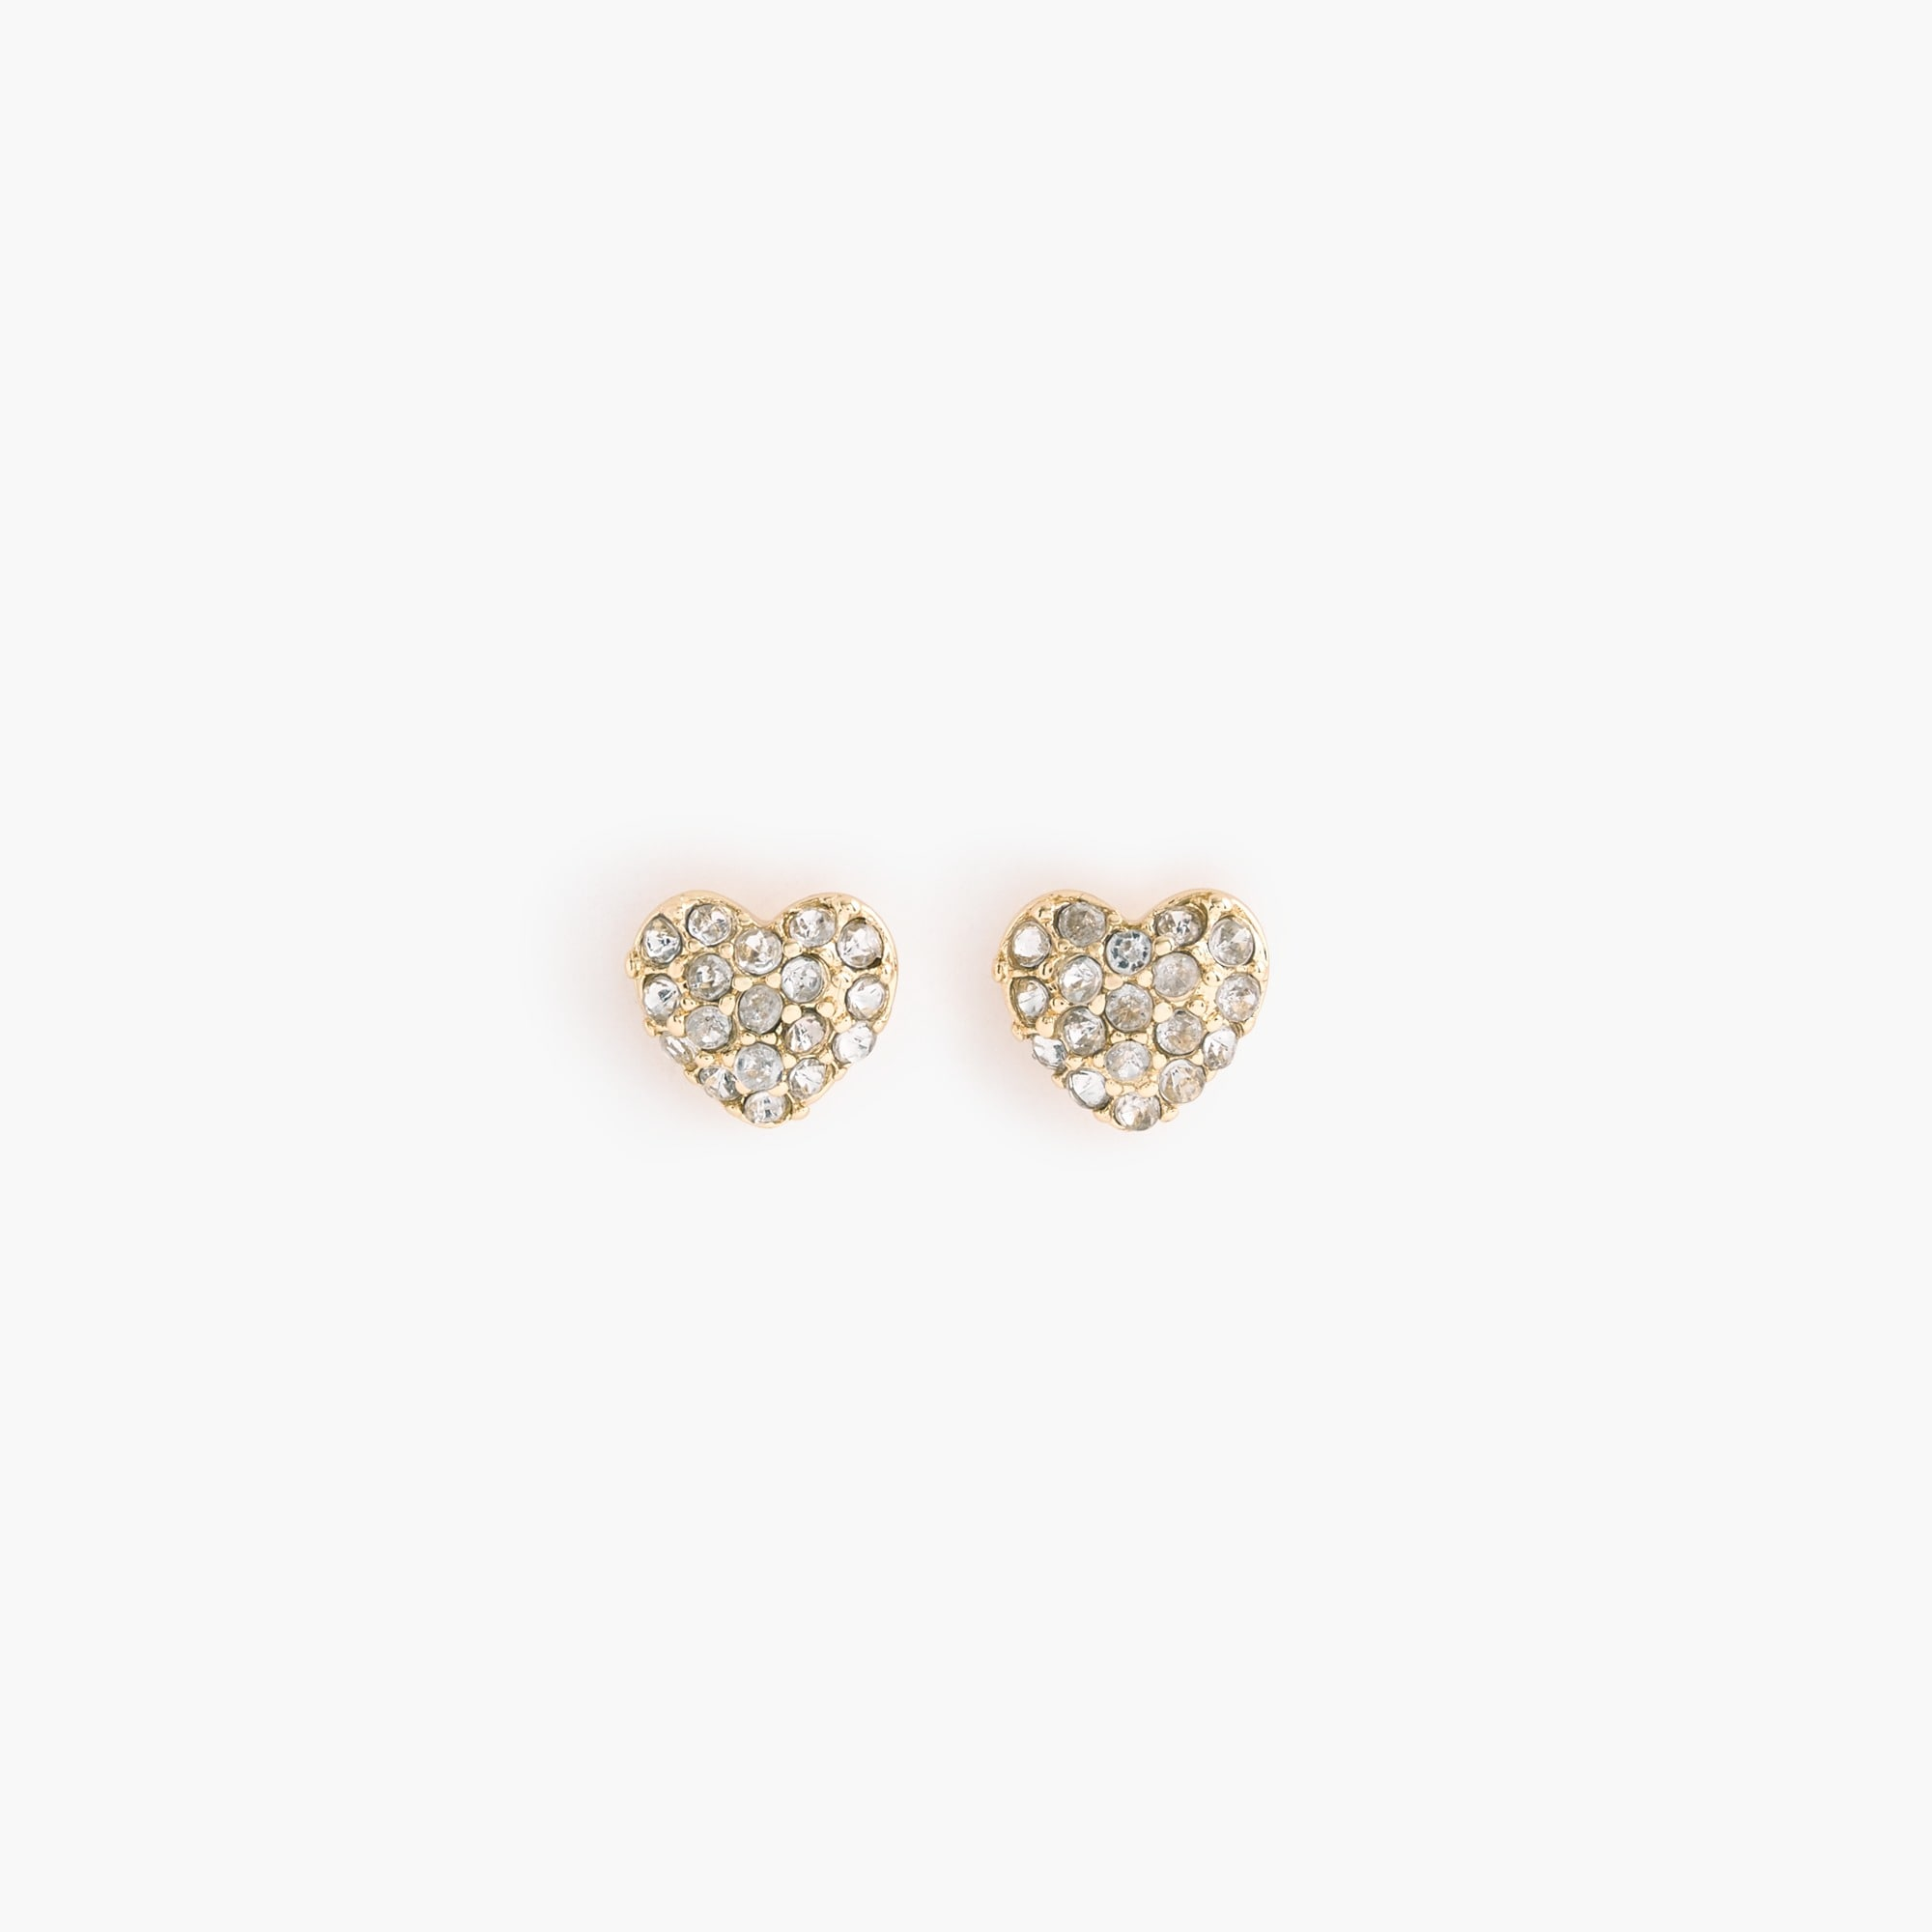 Girls' stud earrings girl jewelry & accessories c